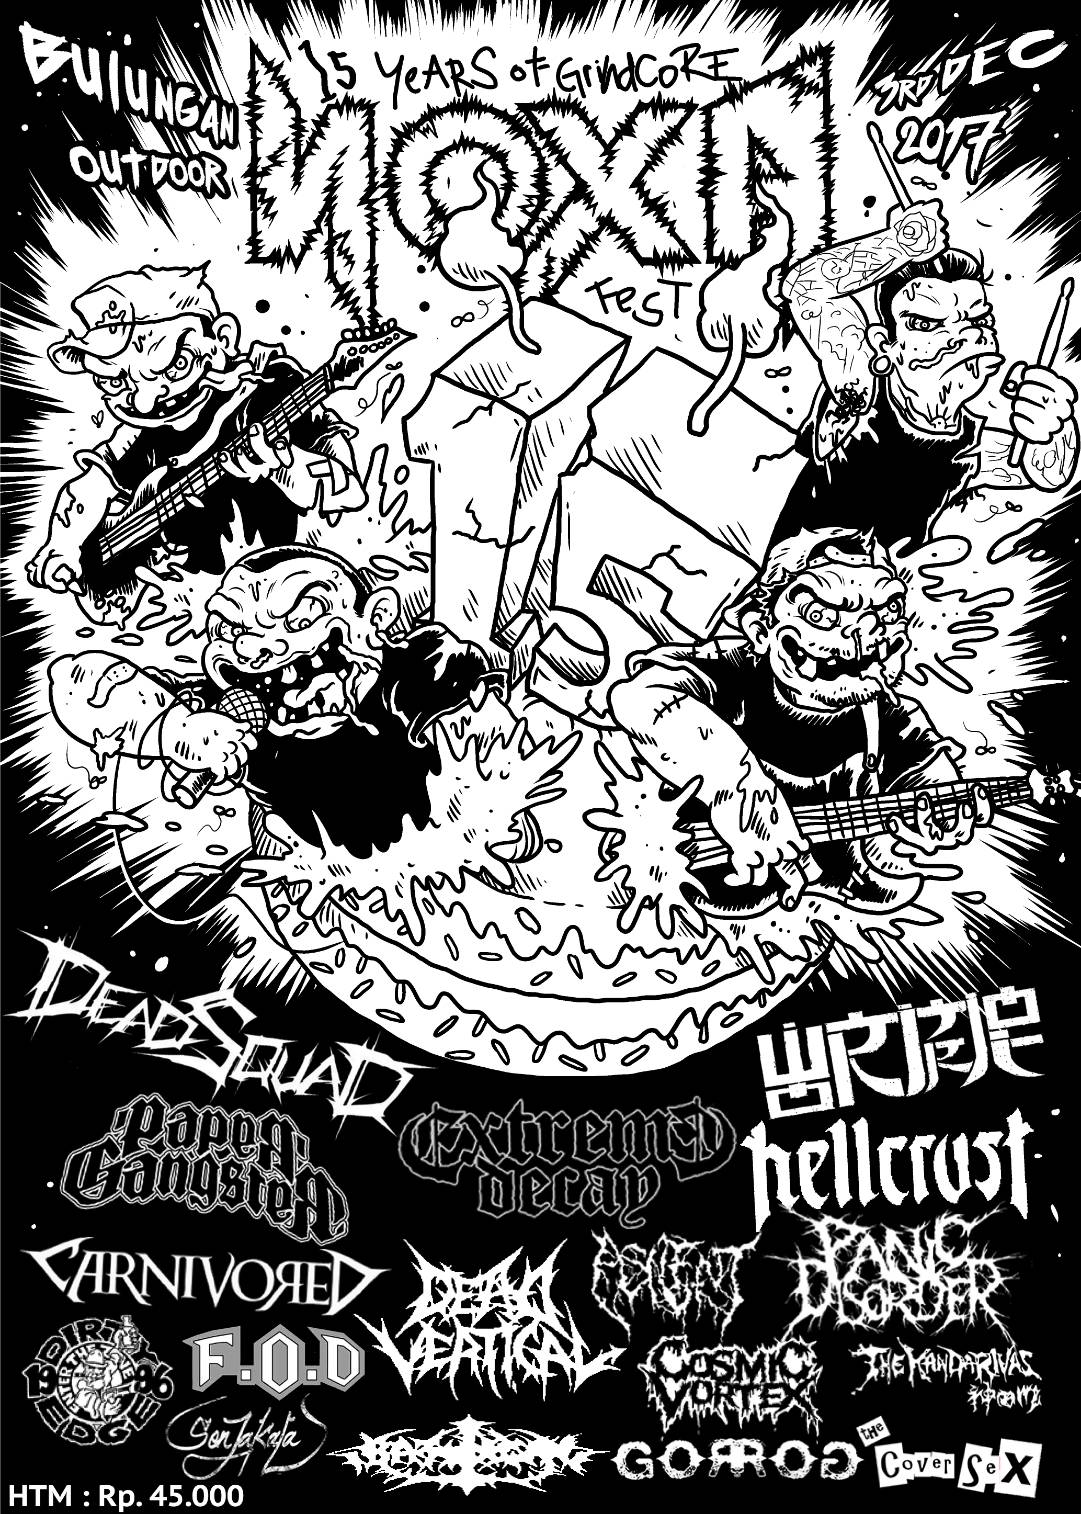 【NOXA FEST 15th Years of Grindcore】in Indonesia